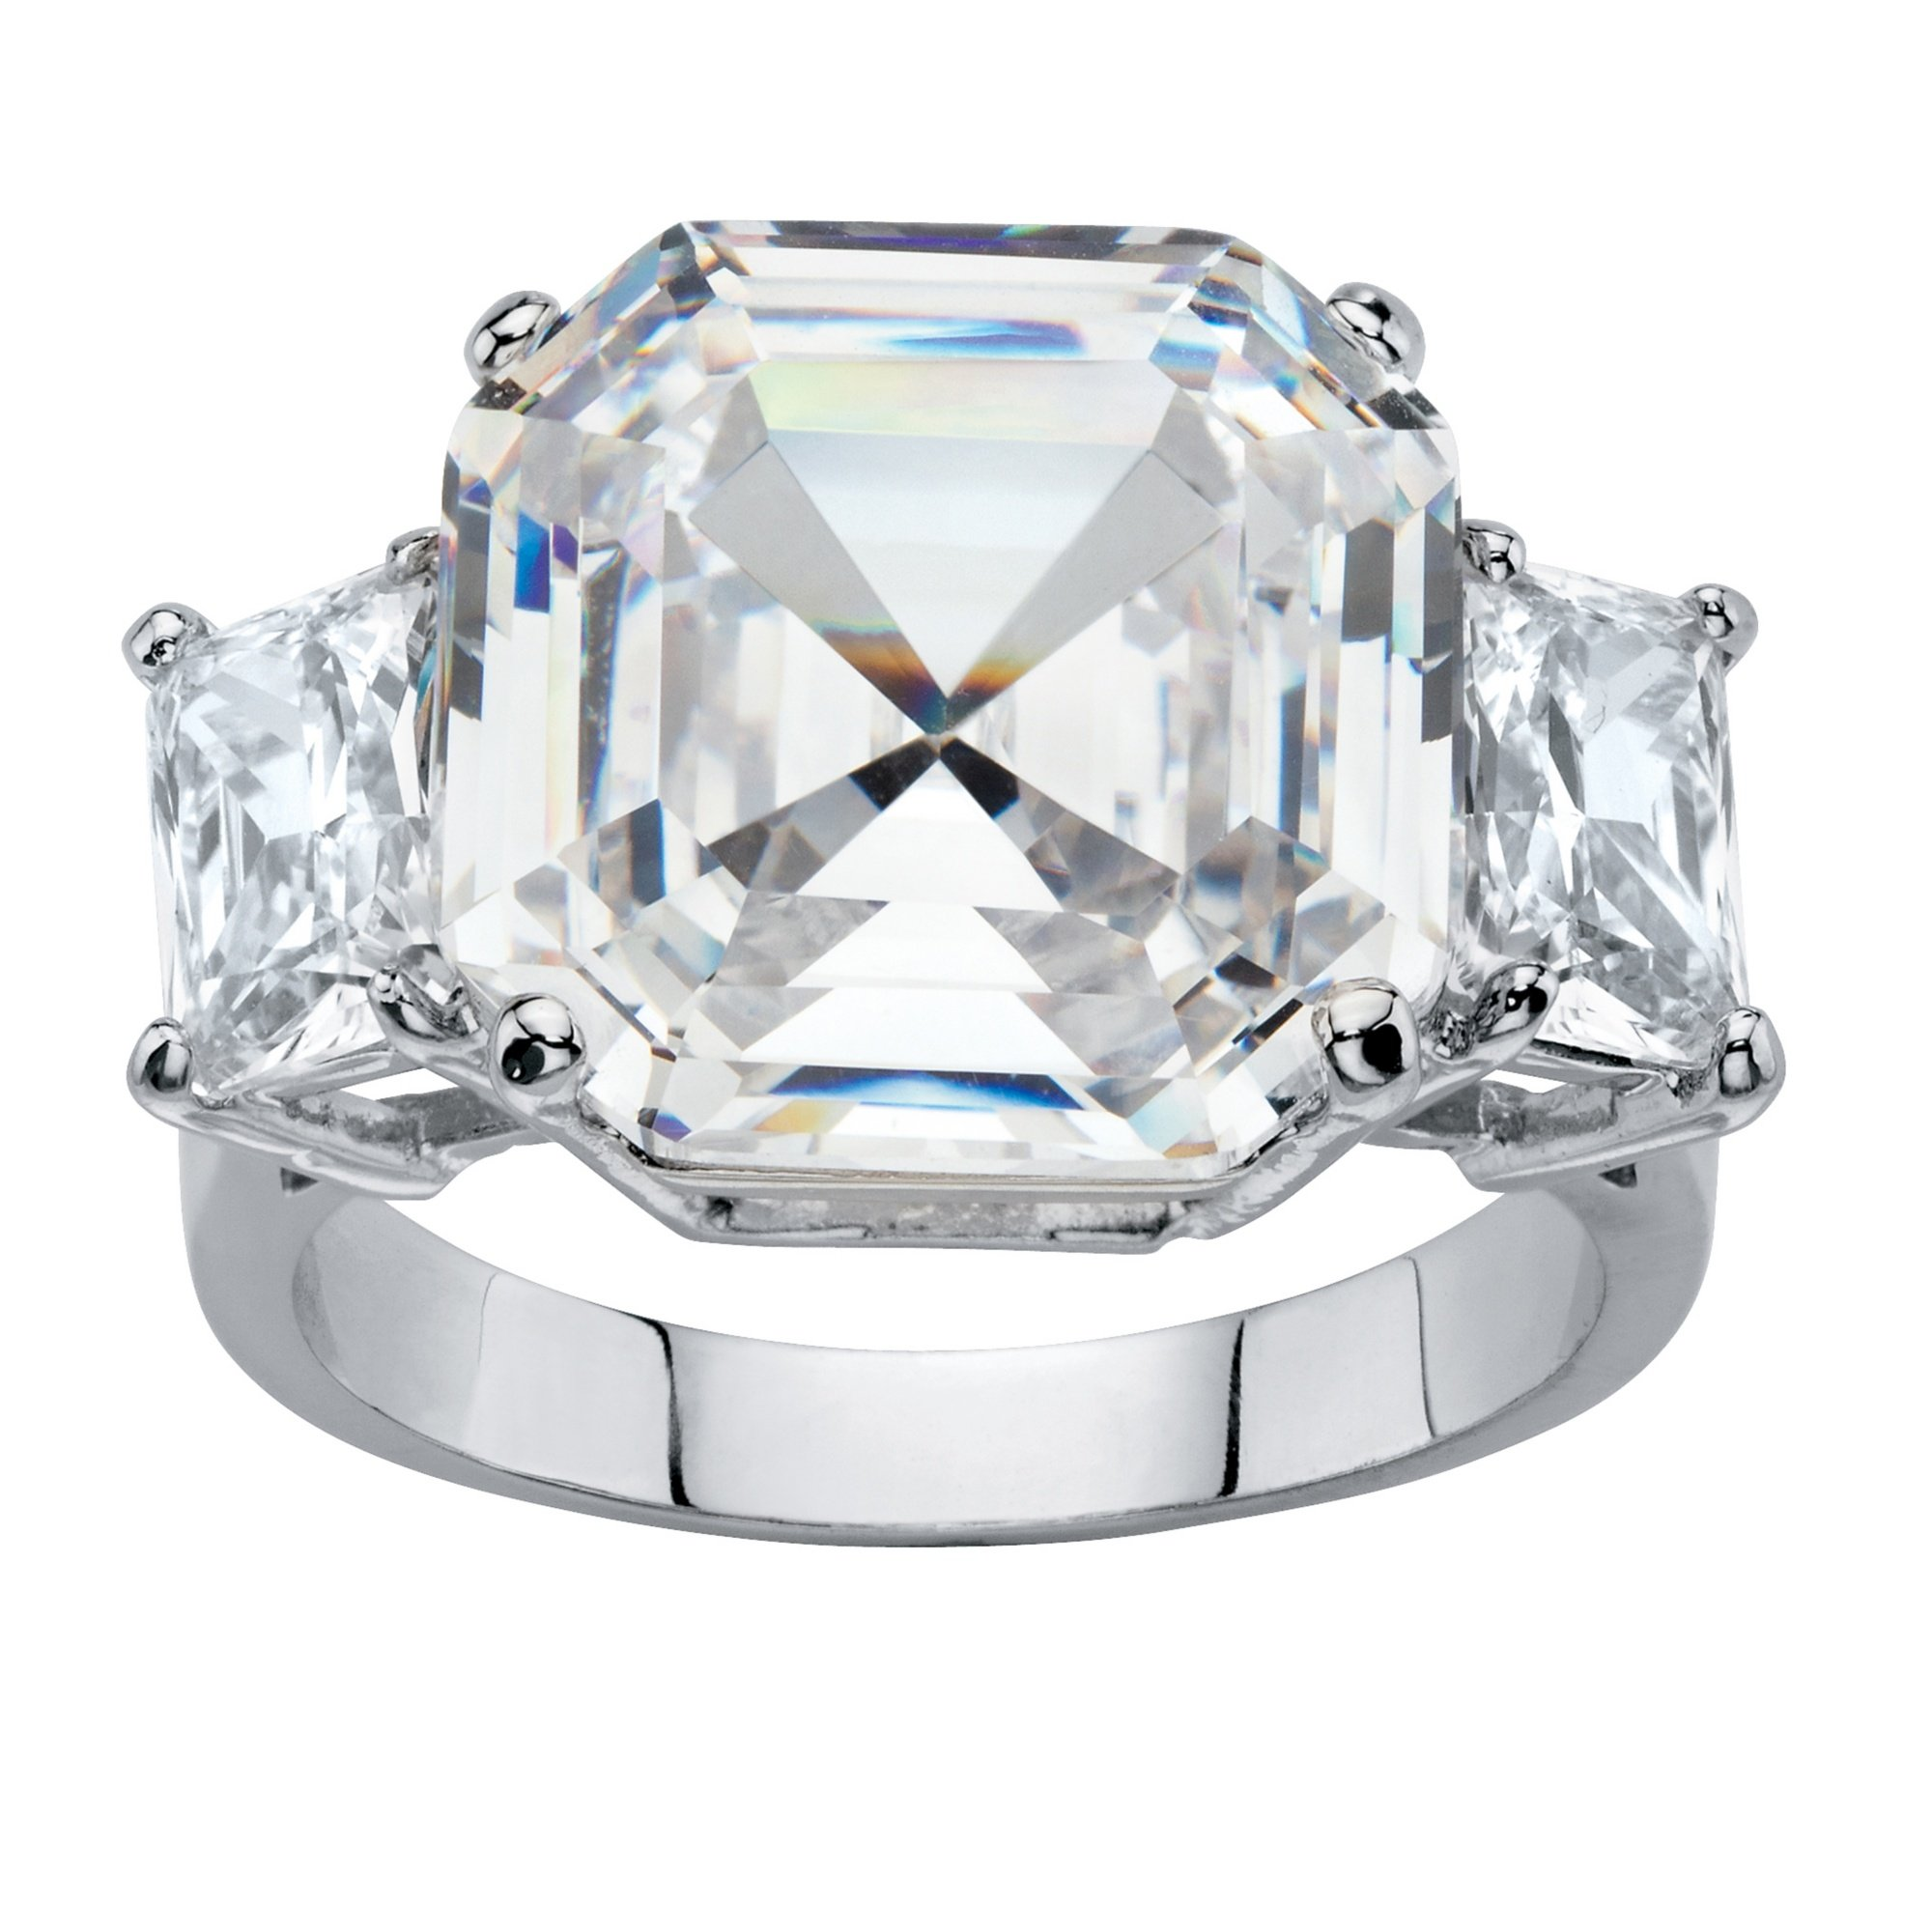 Palm Beach Jewelry Octagon-Cut White Cubic Zirconia Platinum-Plated 3-Stone Engagement Anniversary Ring Size 7